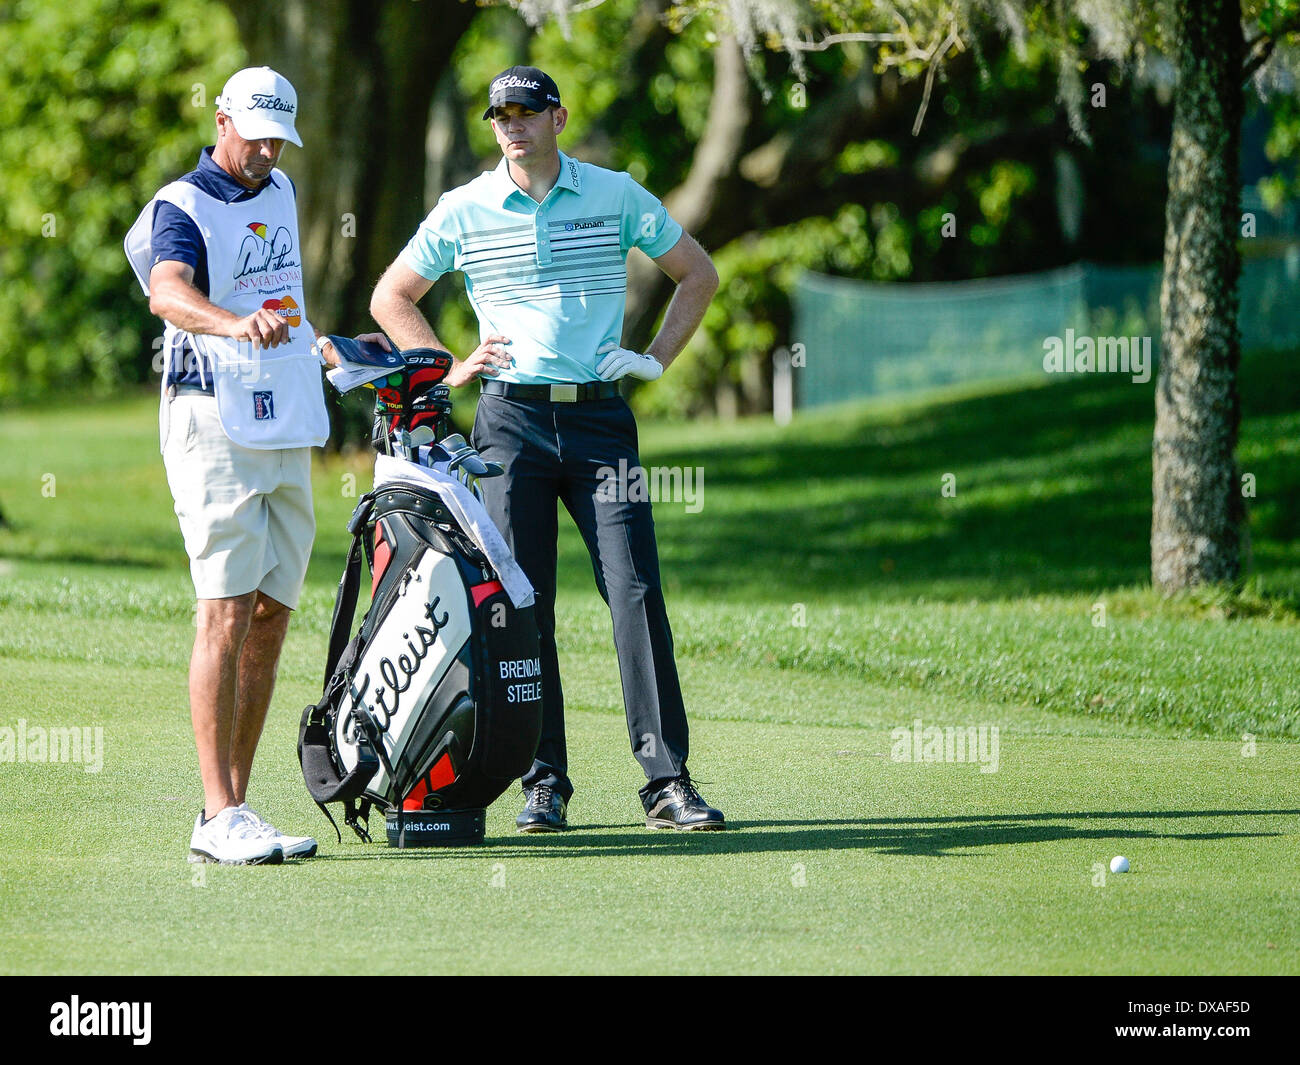 21st March 2014. Brendan Steele #1 fairway during second round golf action of the Arnold Palmer Invitational presented by Mastercard held at Arnold Palmer's ...